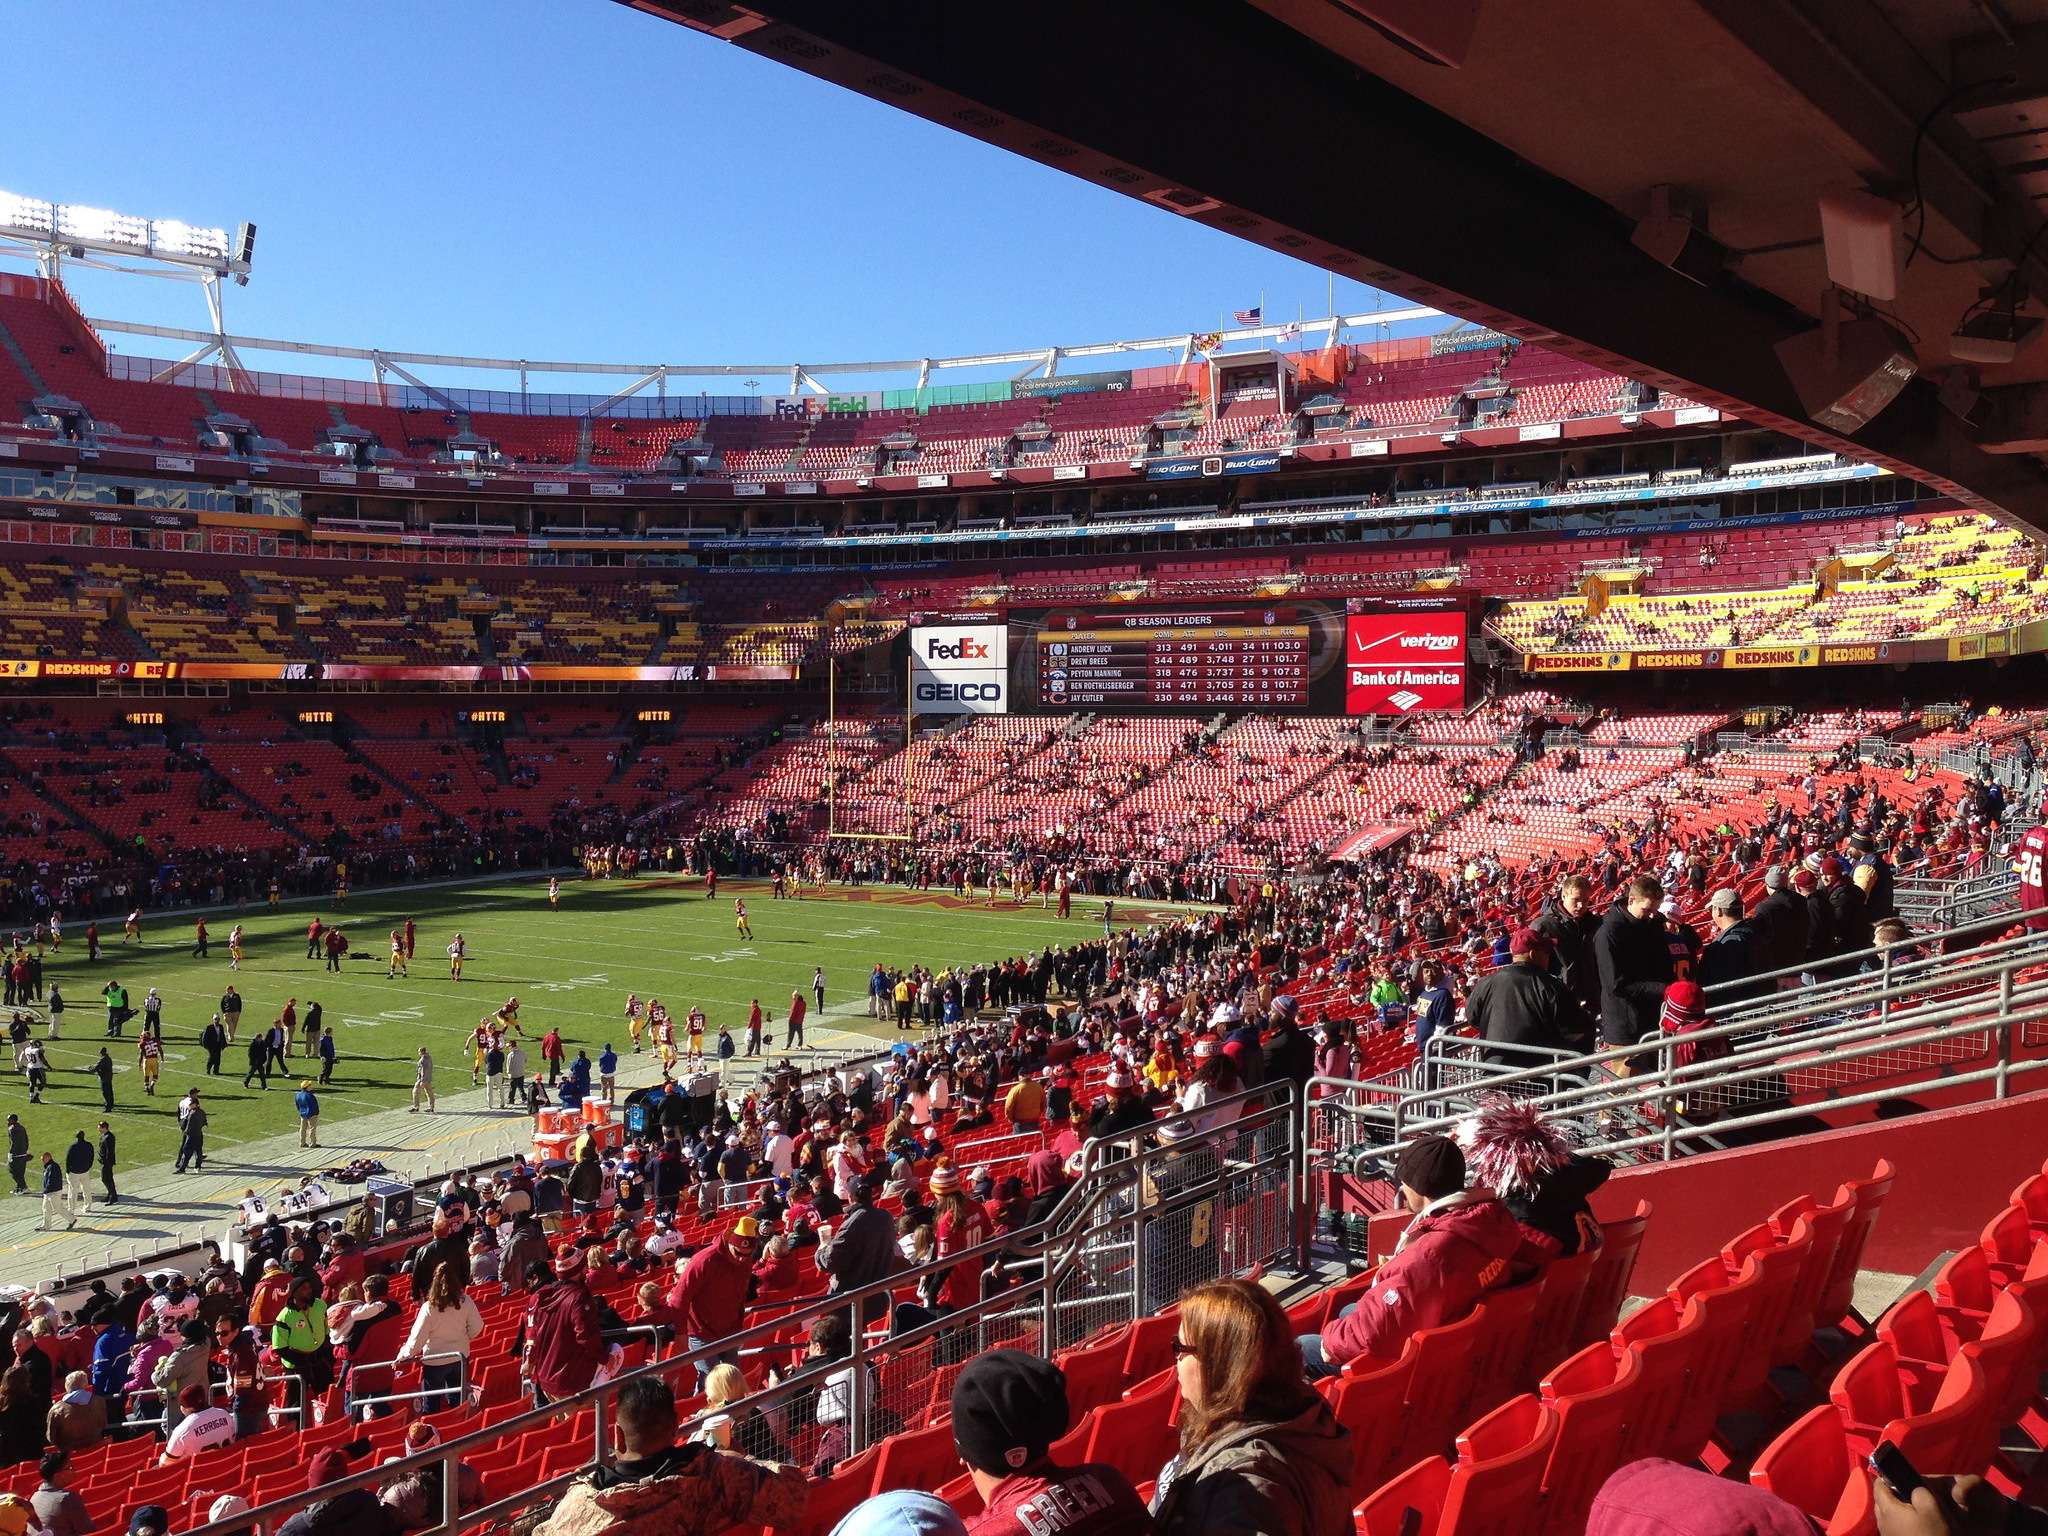 Home of the Washington Redskins FedEx Field